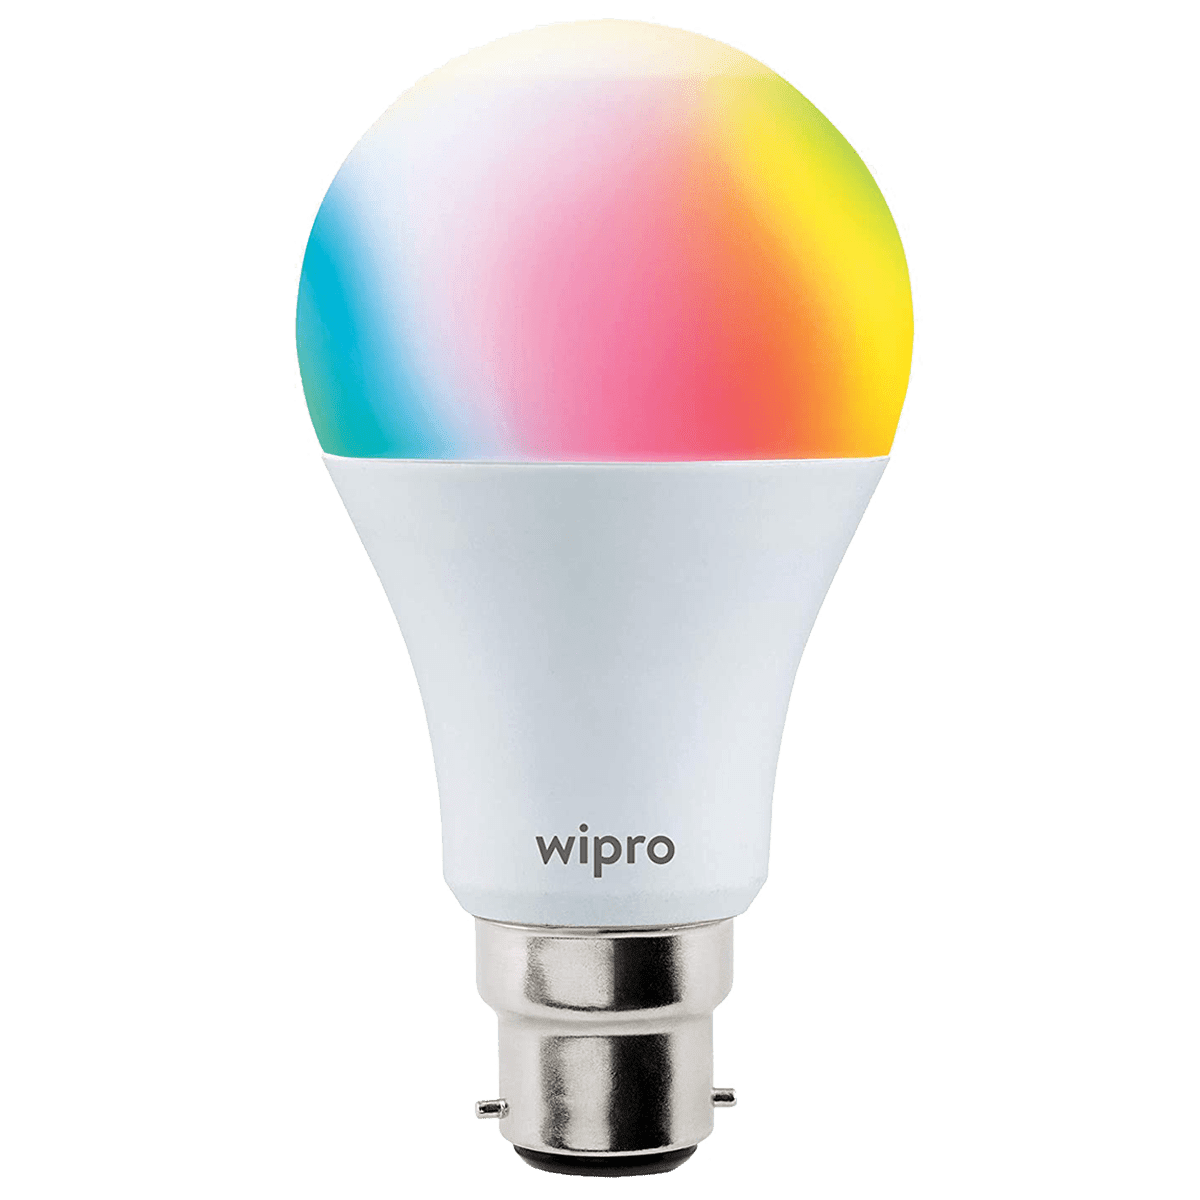 Wipro 9 Watts LED Smart Bulb (White Tunable and Dimmable, NS9001, Multicolor)